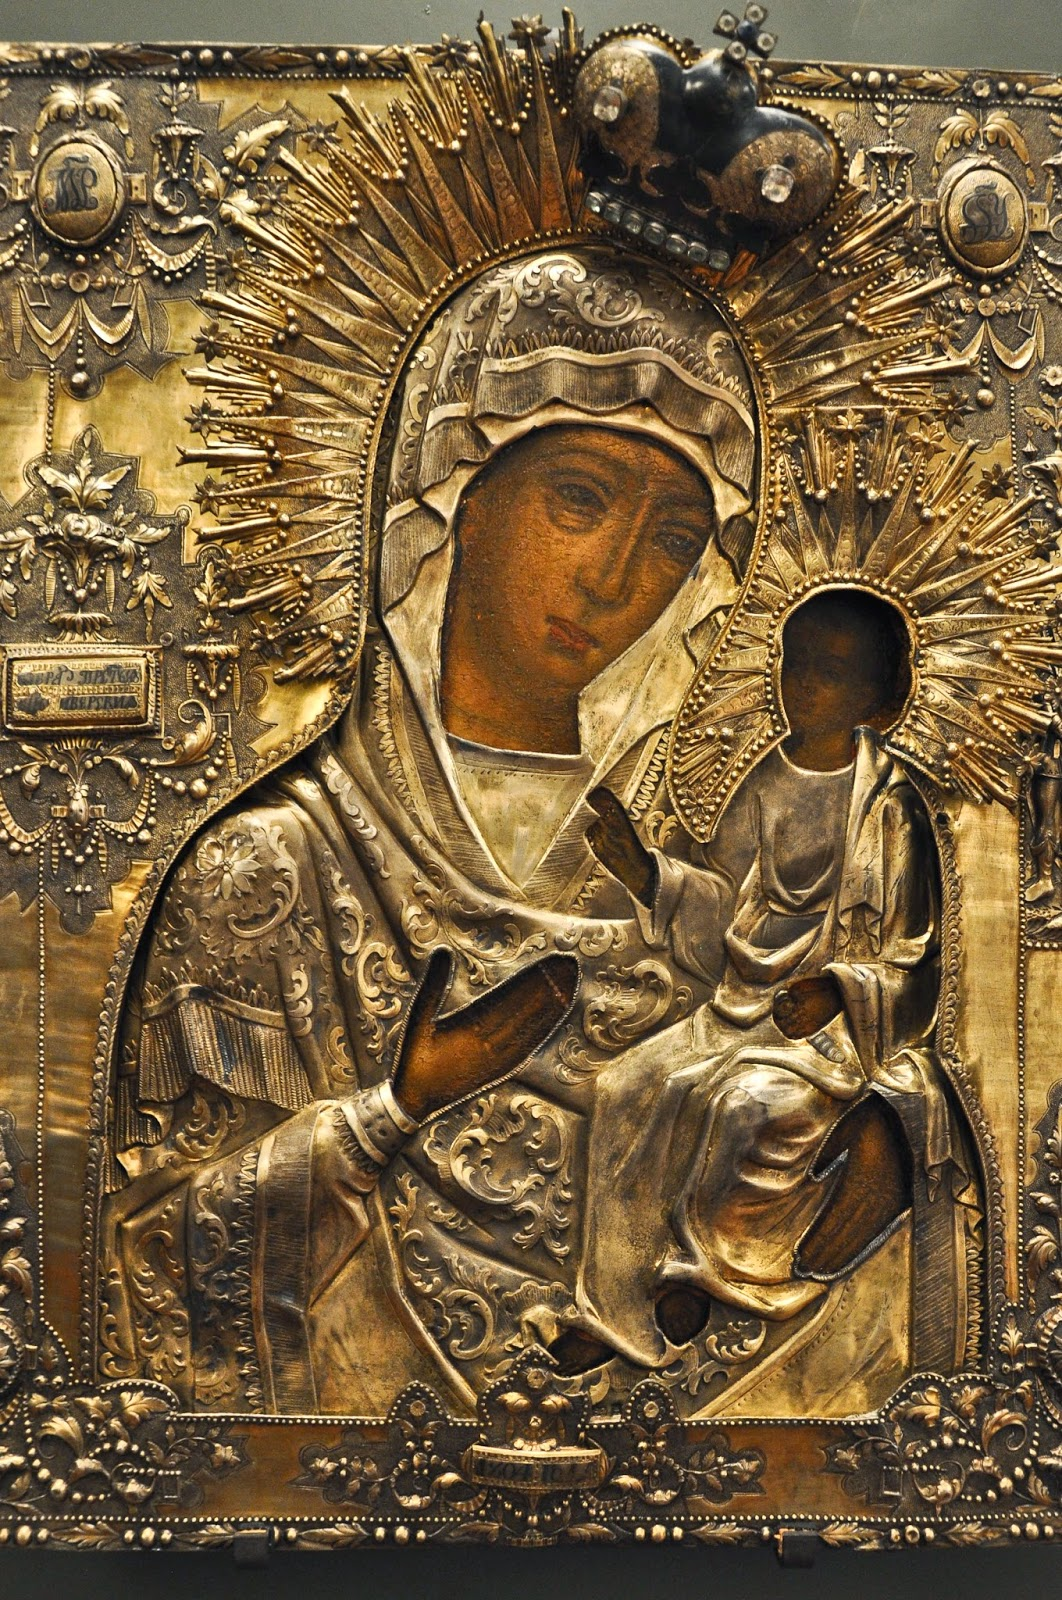 A Russian icon with an embossed metal covering, Gallerie d'Italia, Palazzo Leoni Montanari, Vicenza, Italia